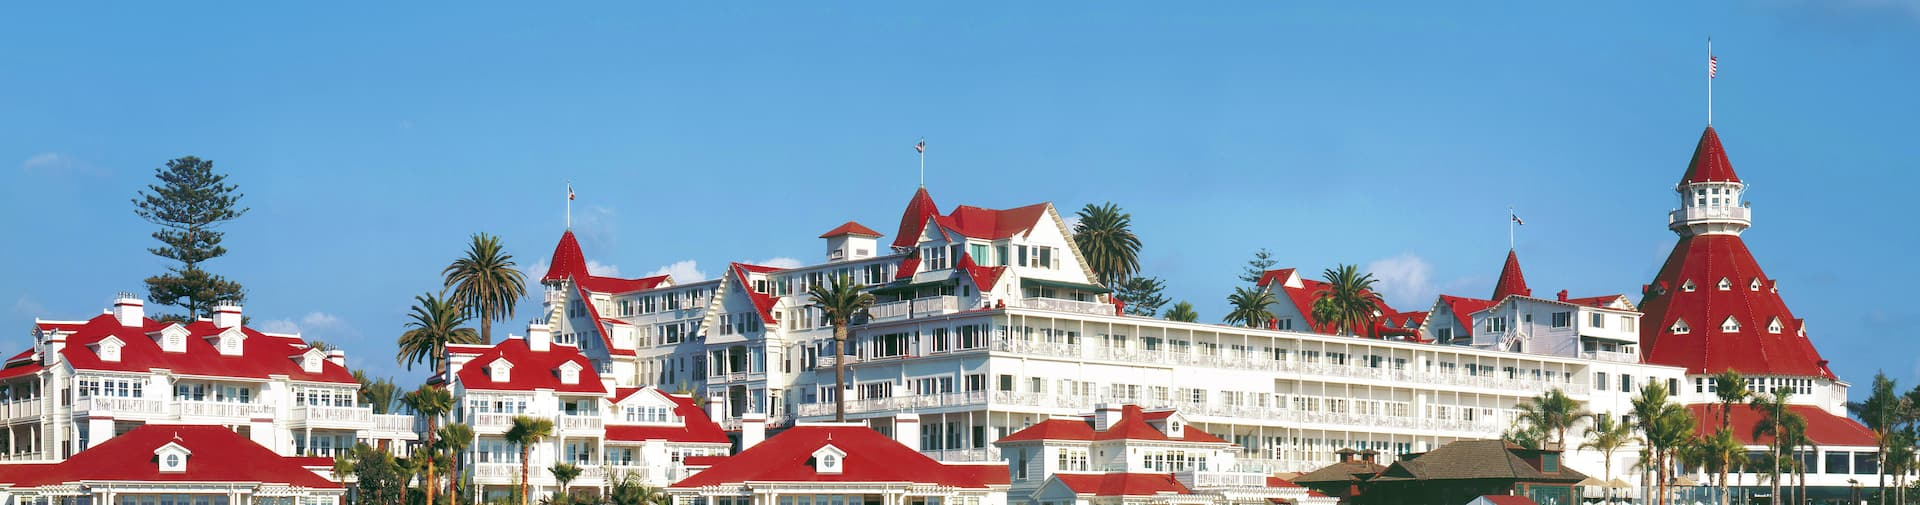 Exterior of Hotel del Coronado, Curio Collection by Hilton, CA